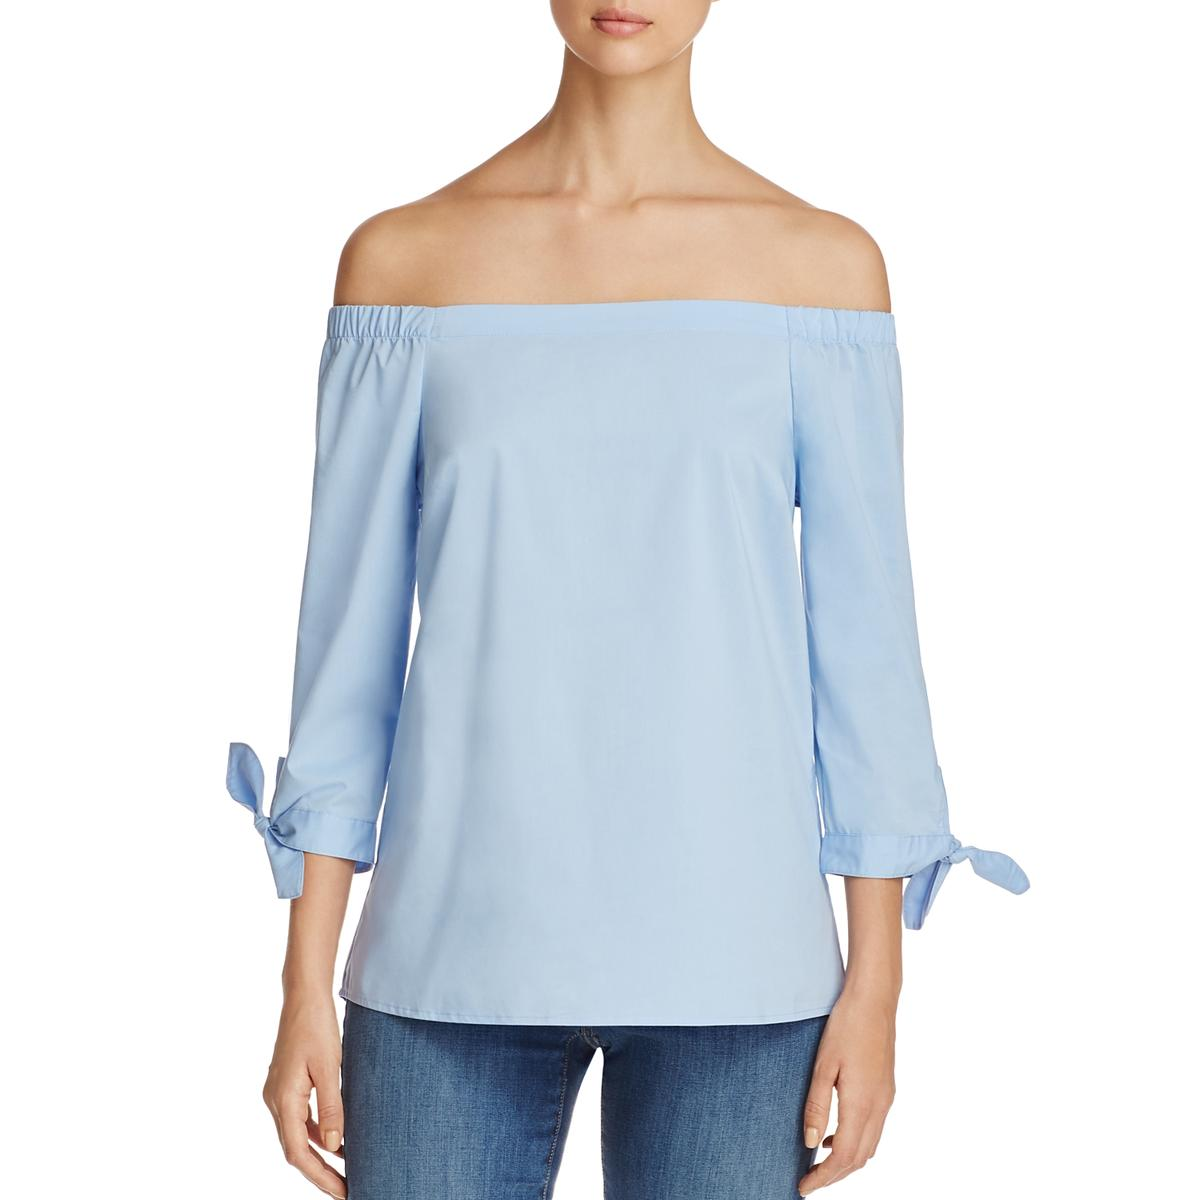 f33f3458b015f5 Details about Cupio Womens Button Down Back Off the Shoulder Tie Sleeve  Casual Top BHFO 3411